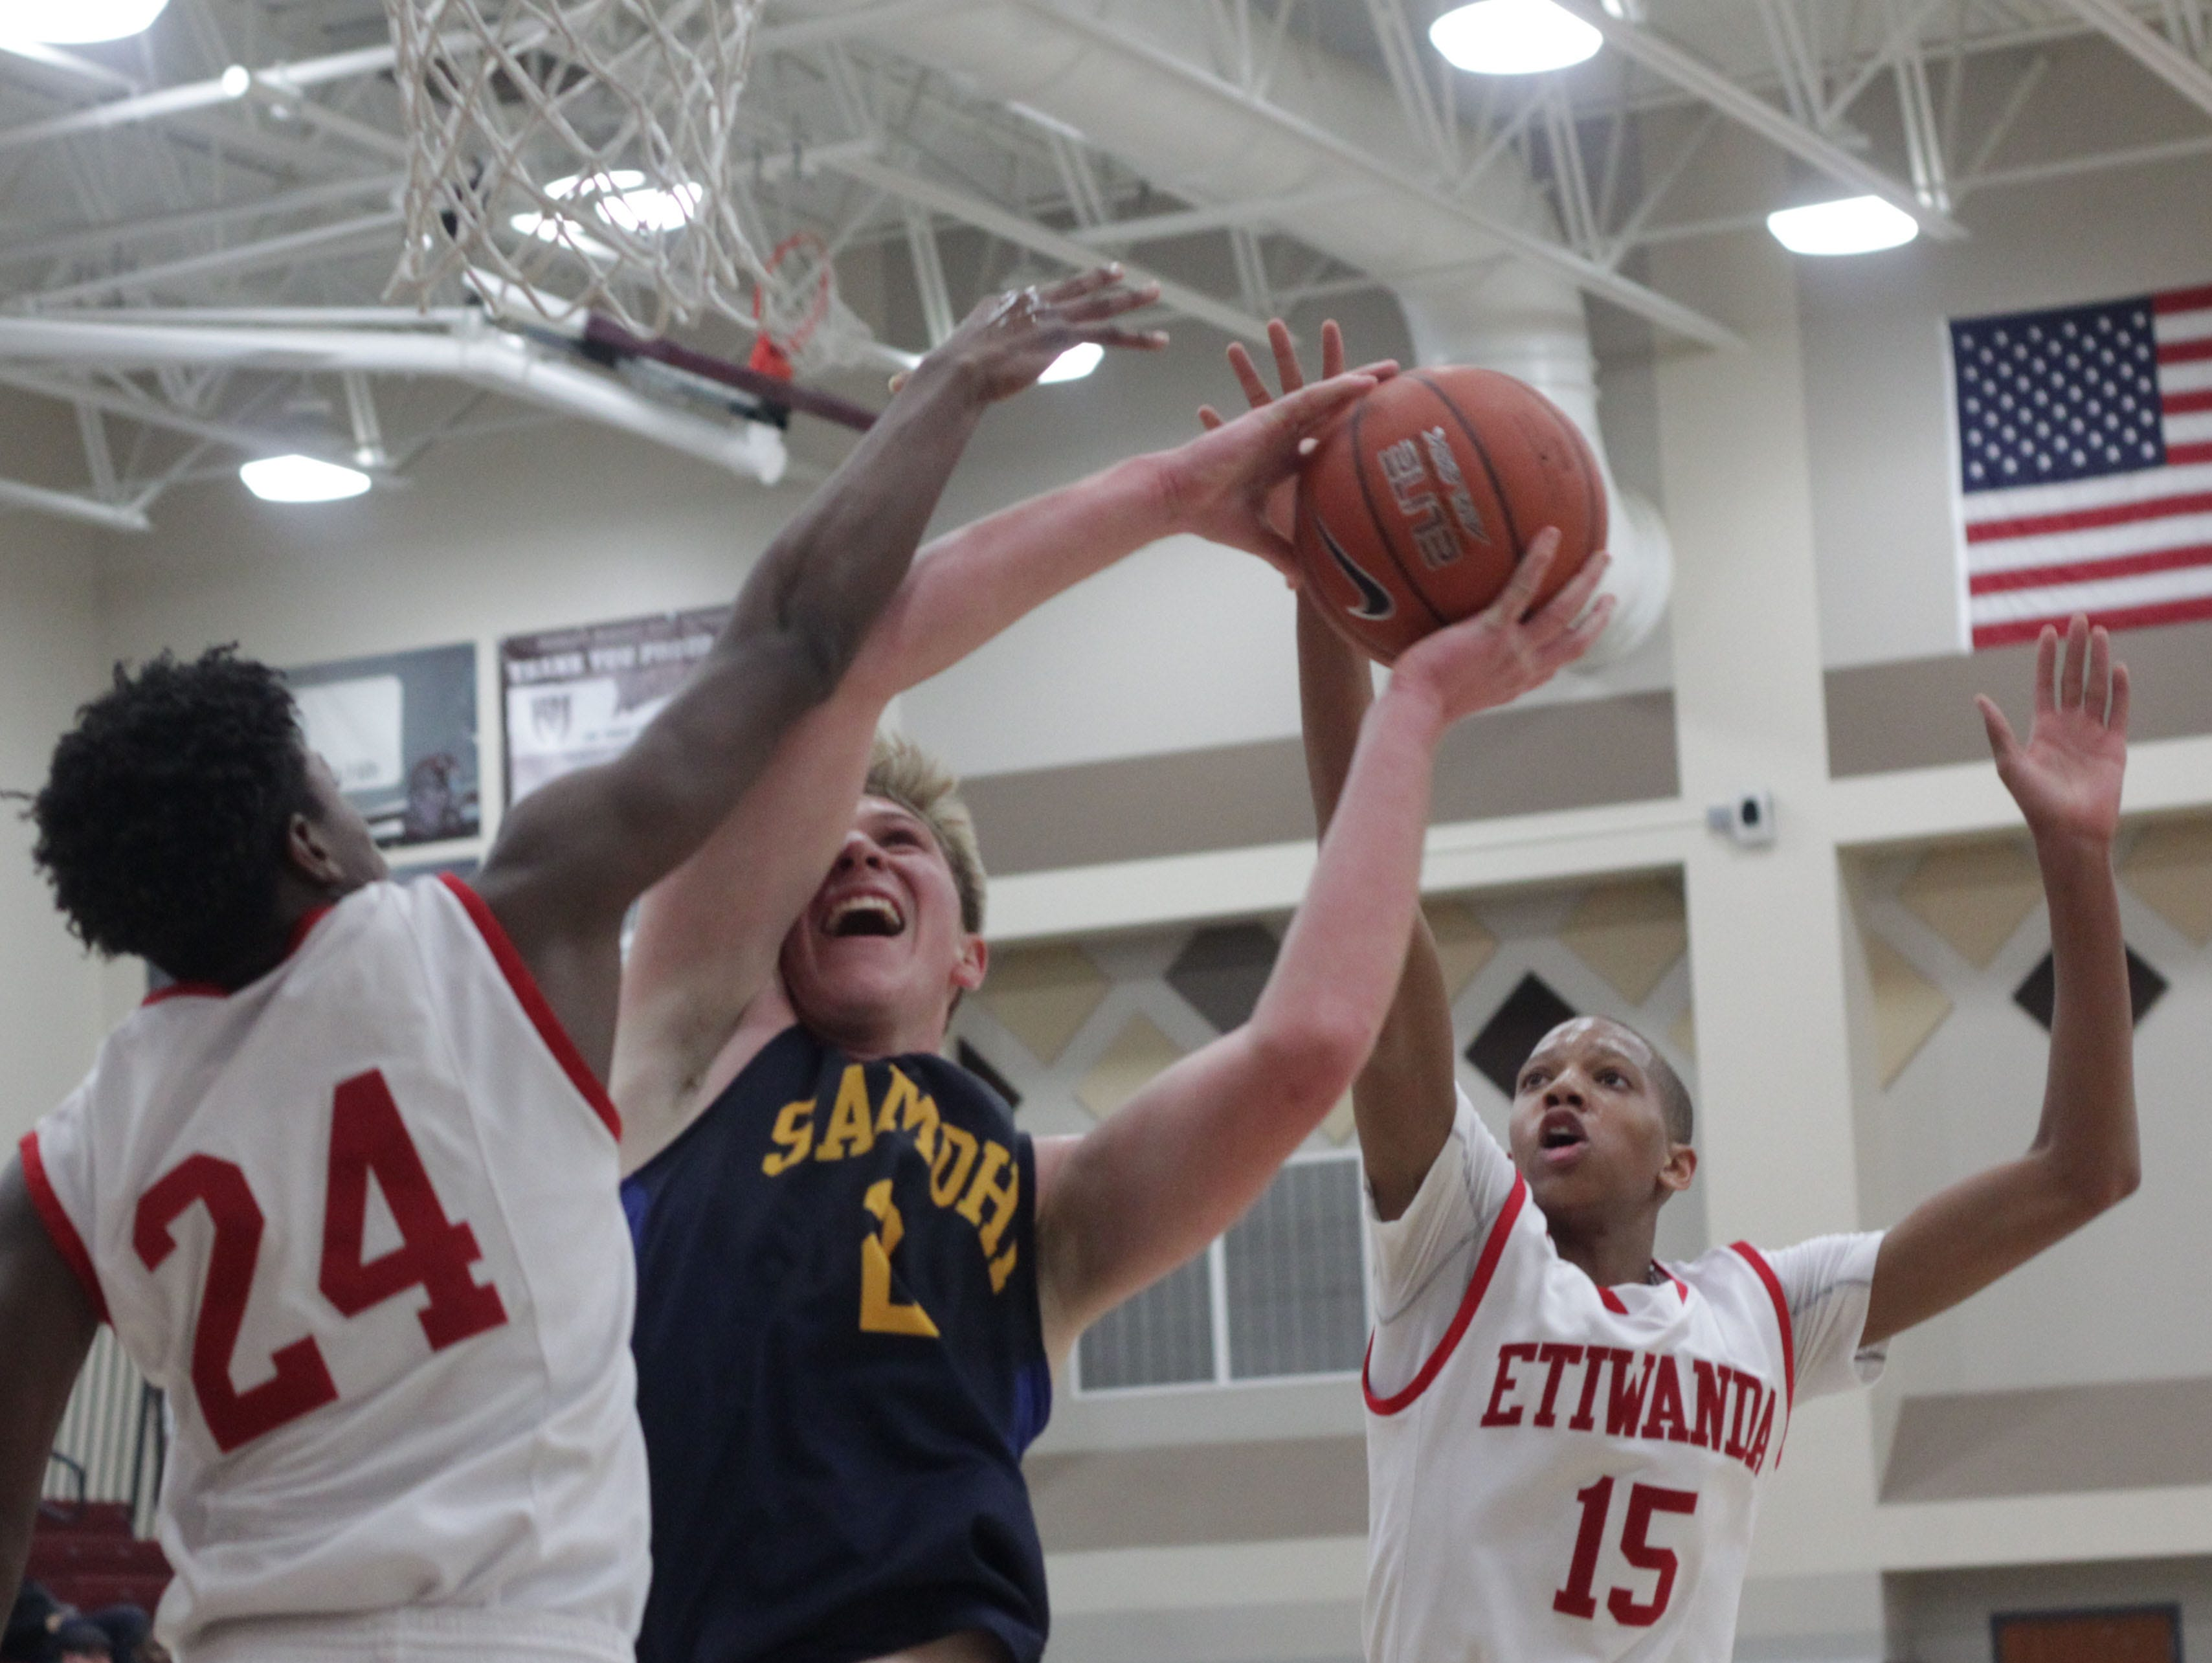 Daniel Schreier, of Santa Monica, overpowers through two Etiwanda players during the MaxPreps Holiday Classic basketball tournament at Rancho Mirage High School.